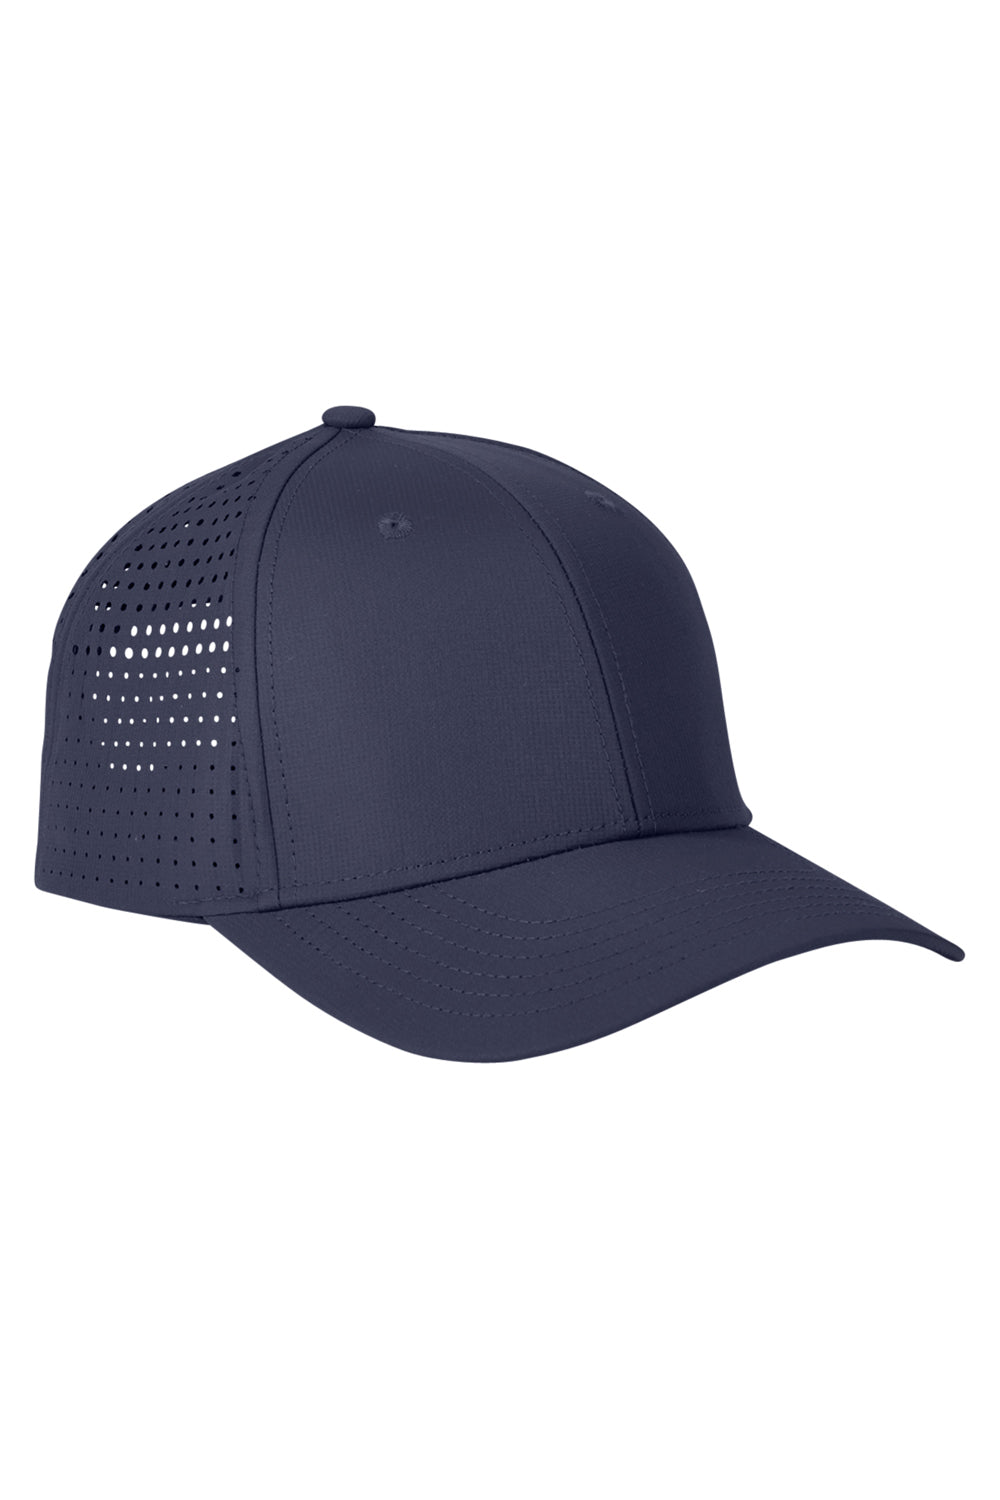 Big Accessories BA537 Mens Performance Adjustable Hat Navy Blue Front